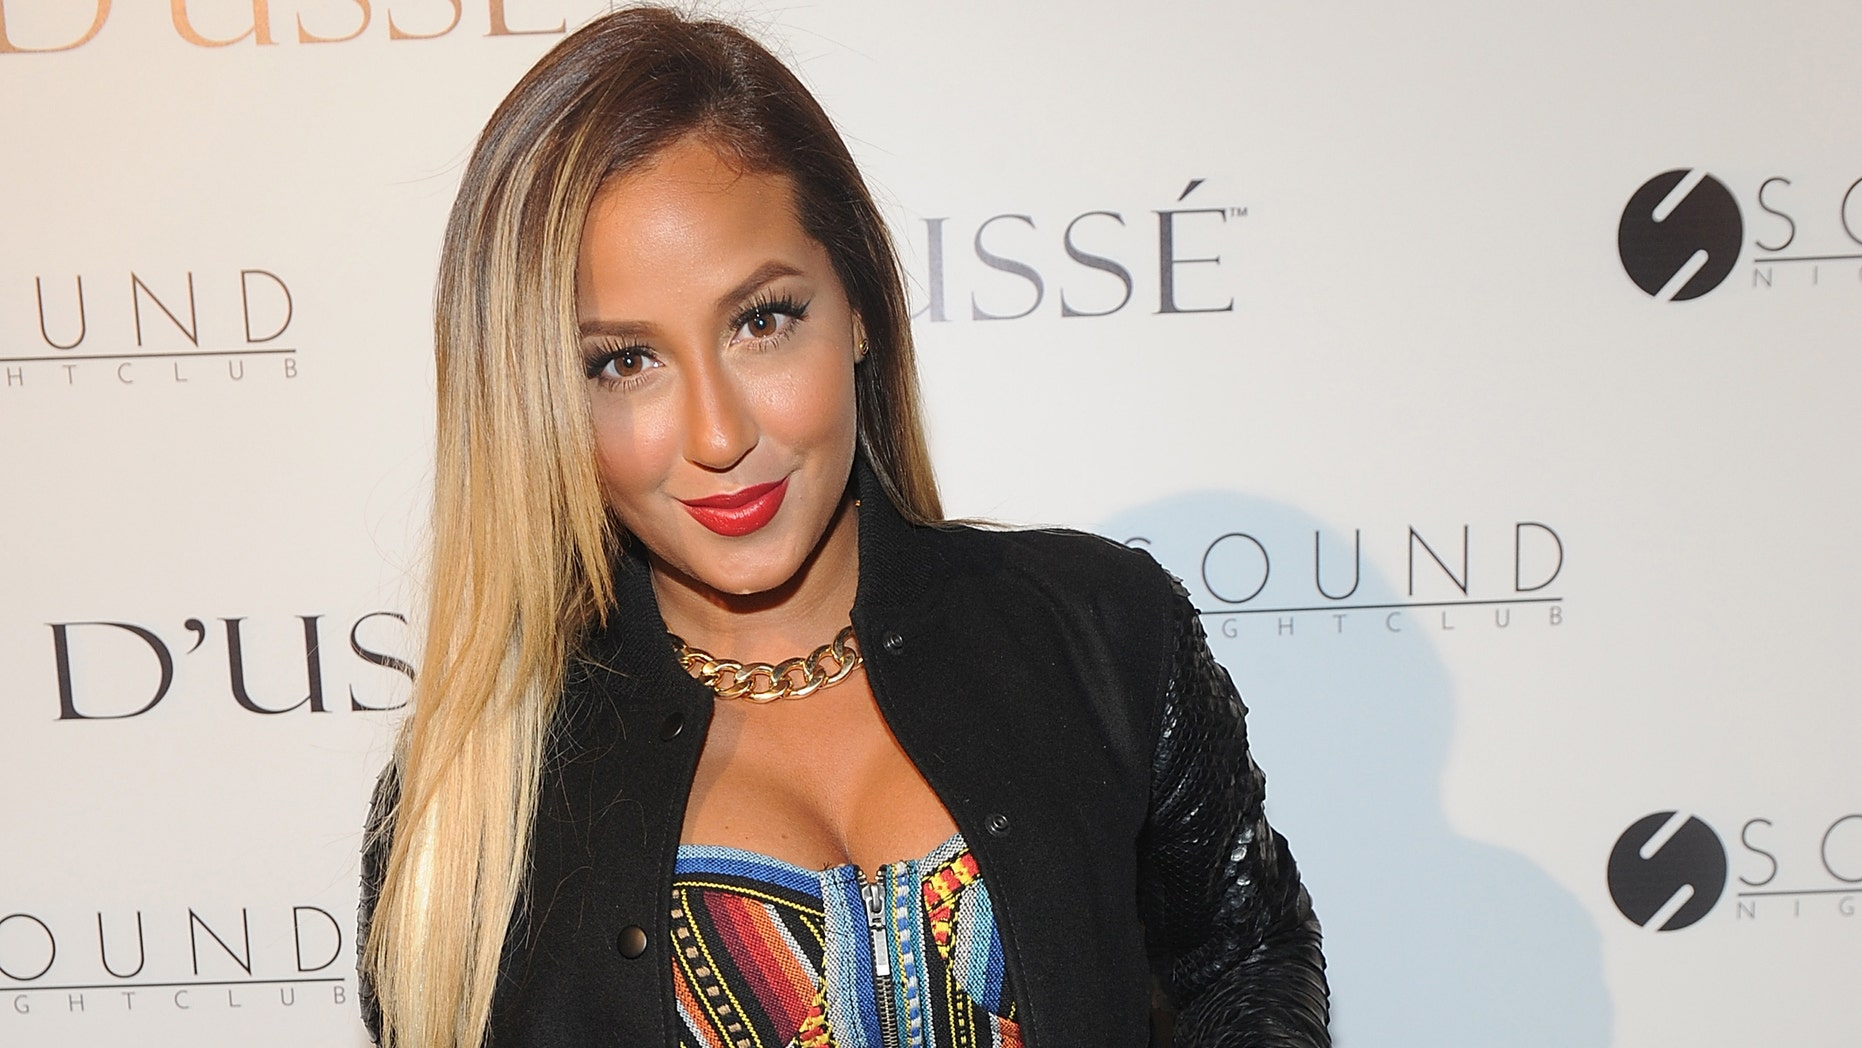 NEW YORK, NY - JULY 27:  Adrienne Bailon attends the After Party at Sound Night club on July 27, 2013 in New York City.  (Photo by Brad Barket/Getty Images)